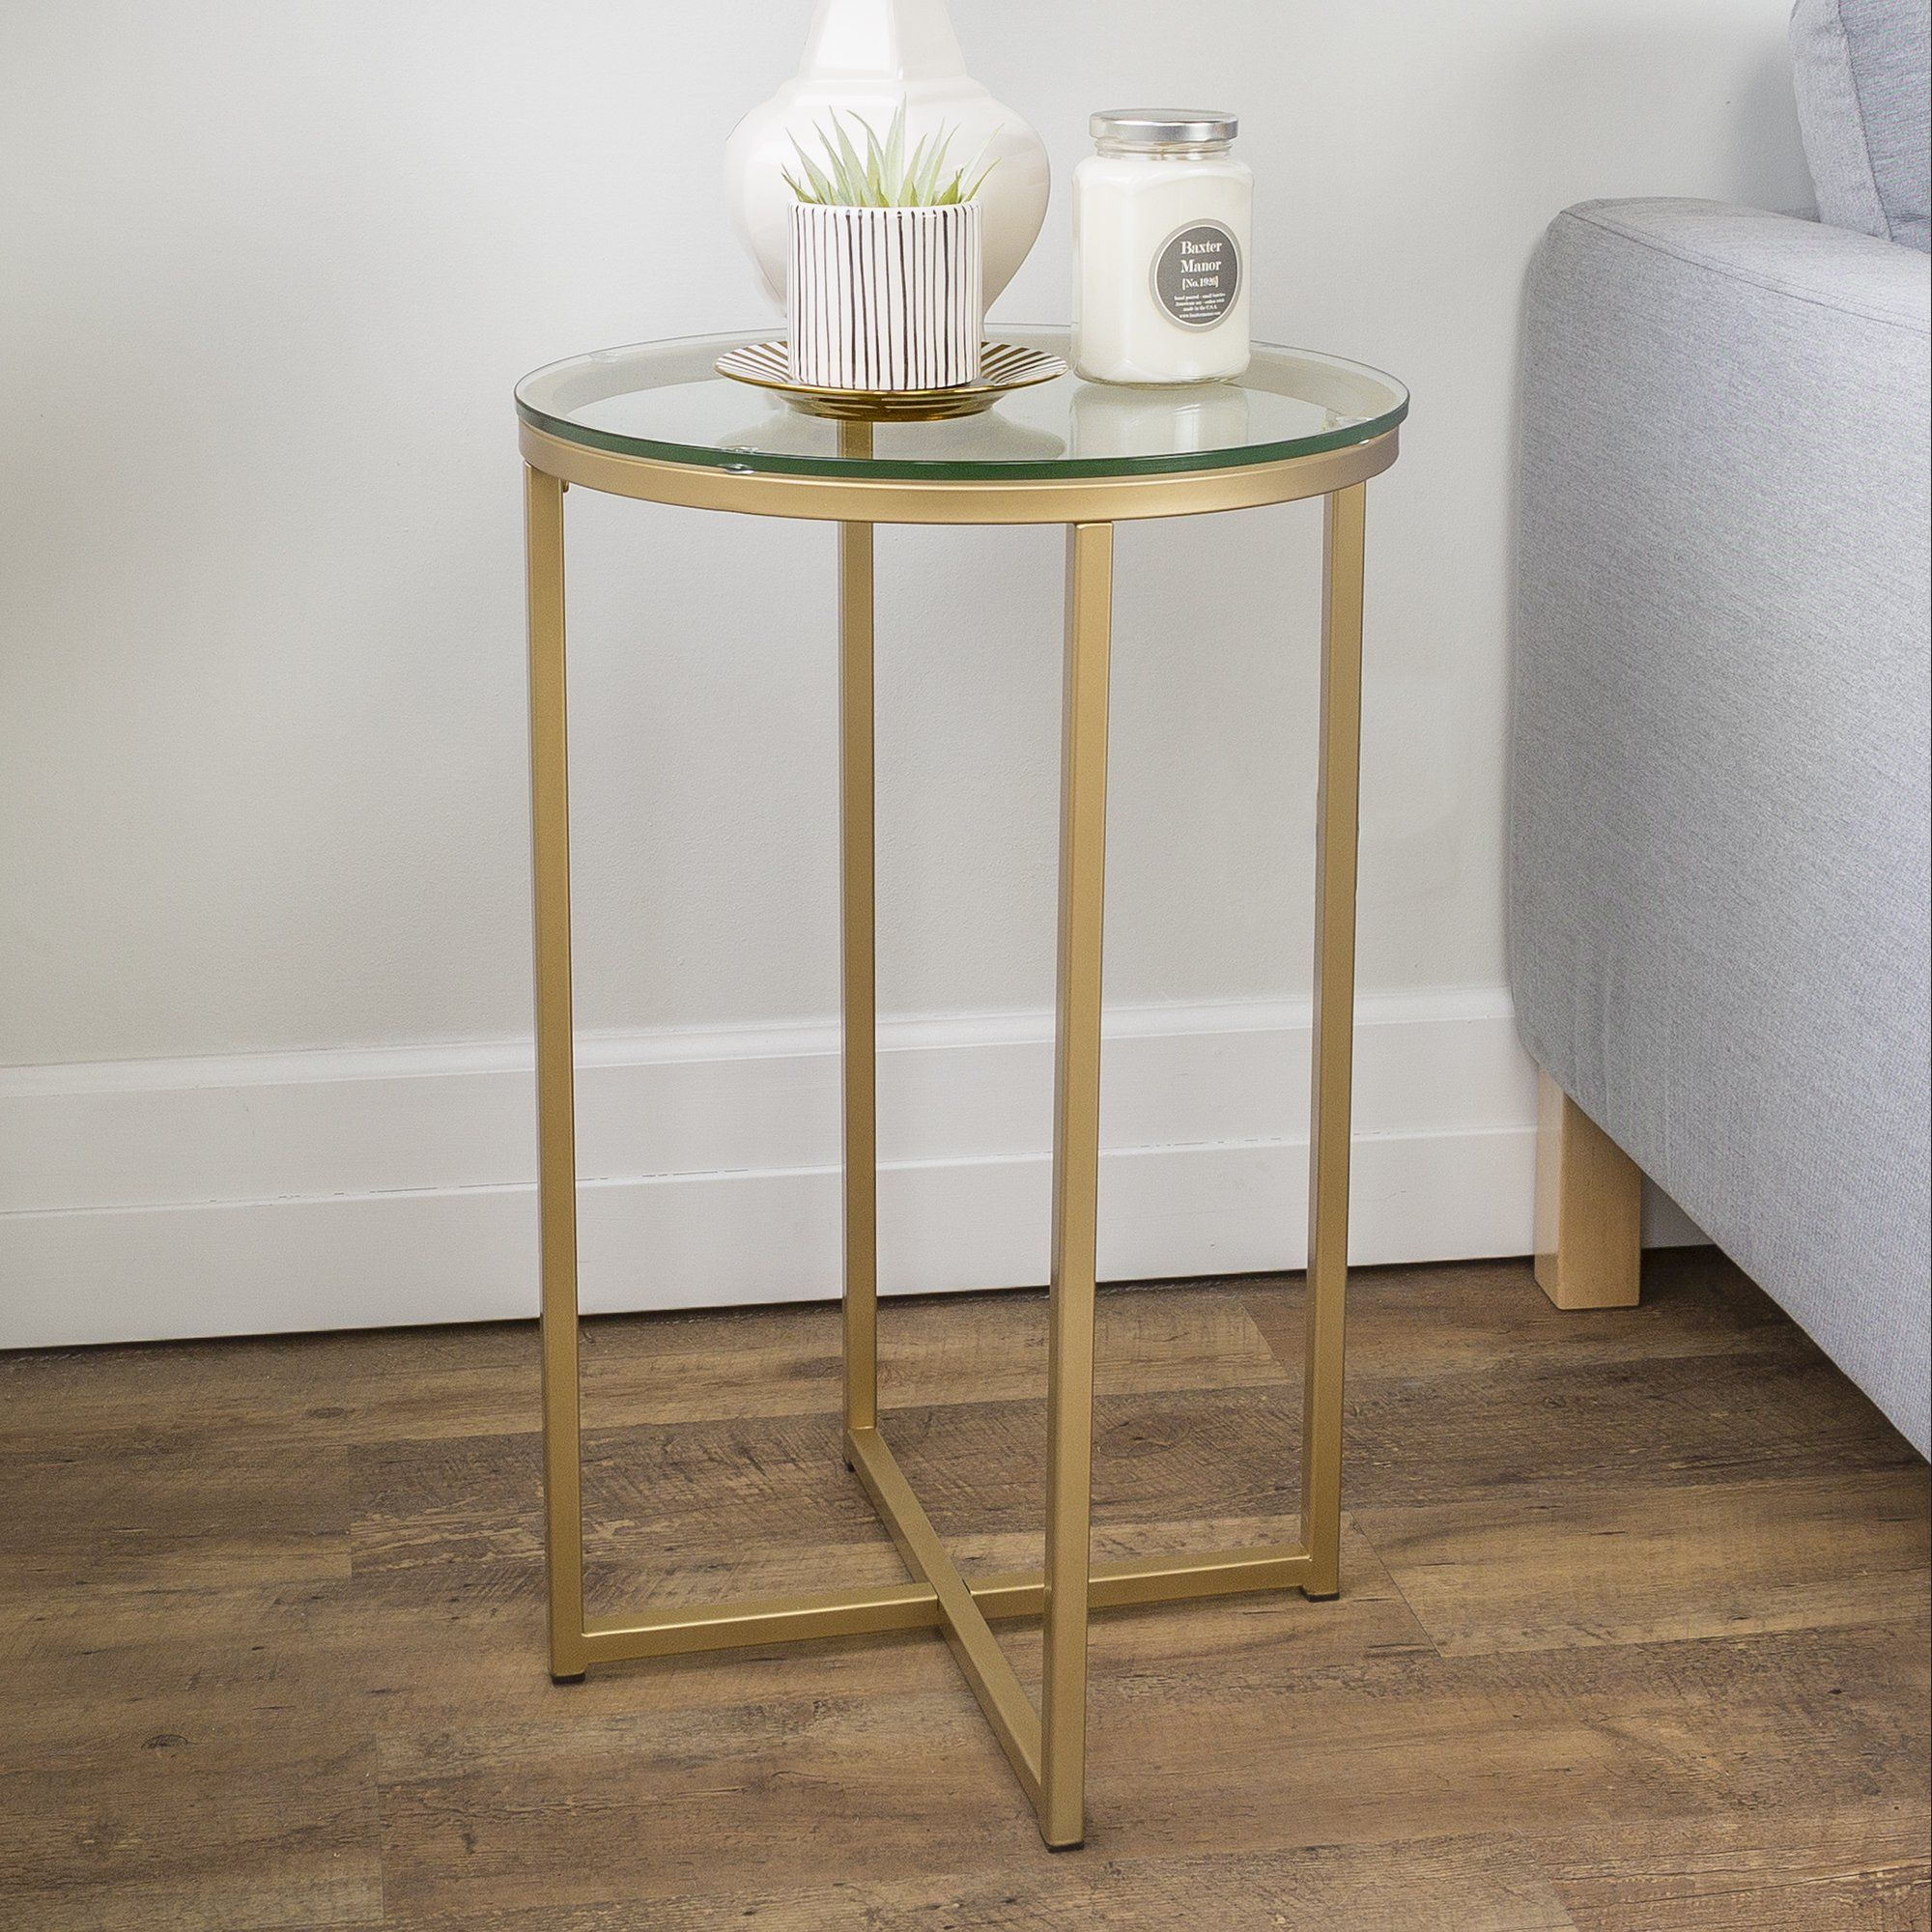 Daisy Glass And Gold Round End Table By Ember Interiors Walmart Com In 2020 Side Table Decor End Tables Round Side Table